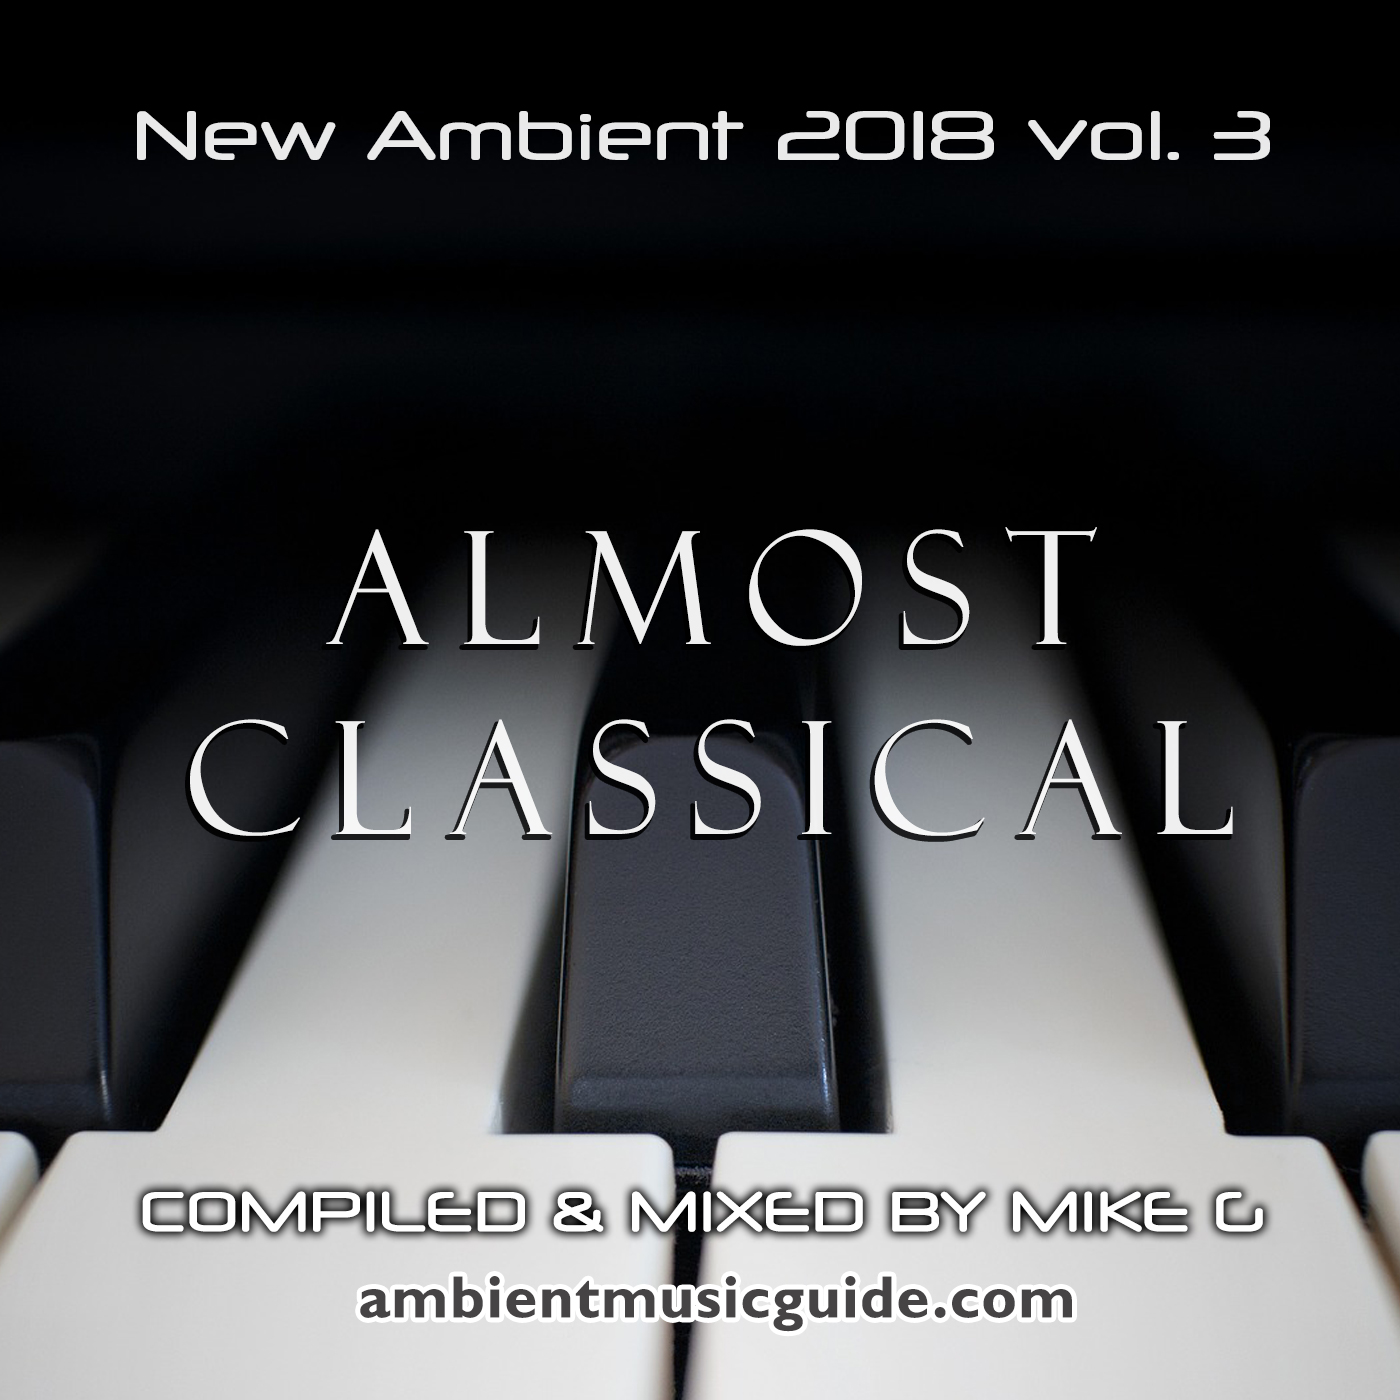 Almost Classical - New Ambient 2018 vol. 3 mixed by Mike G